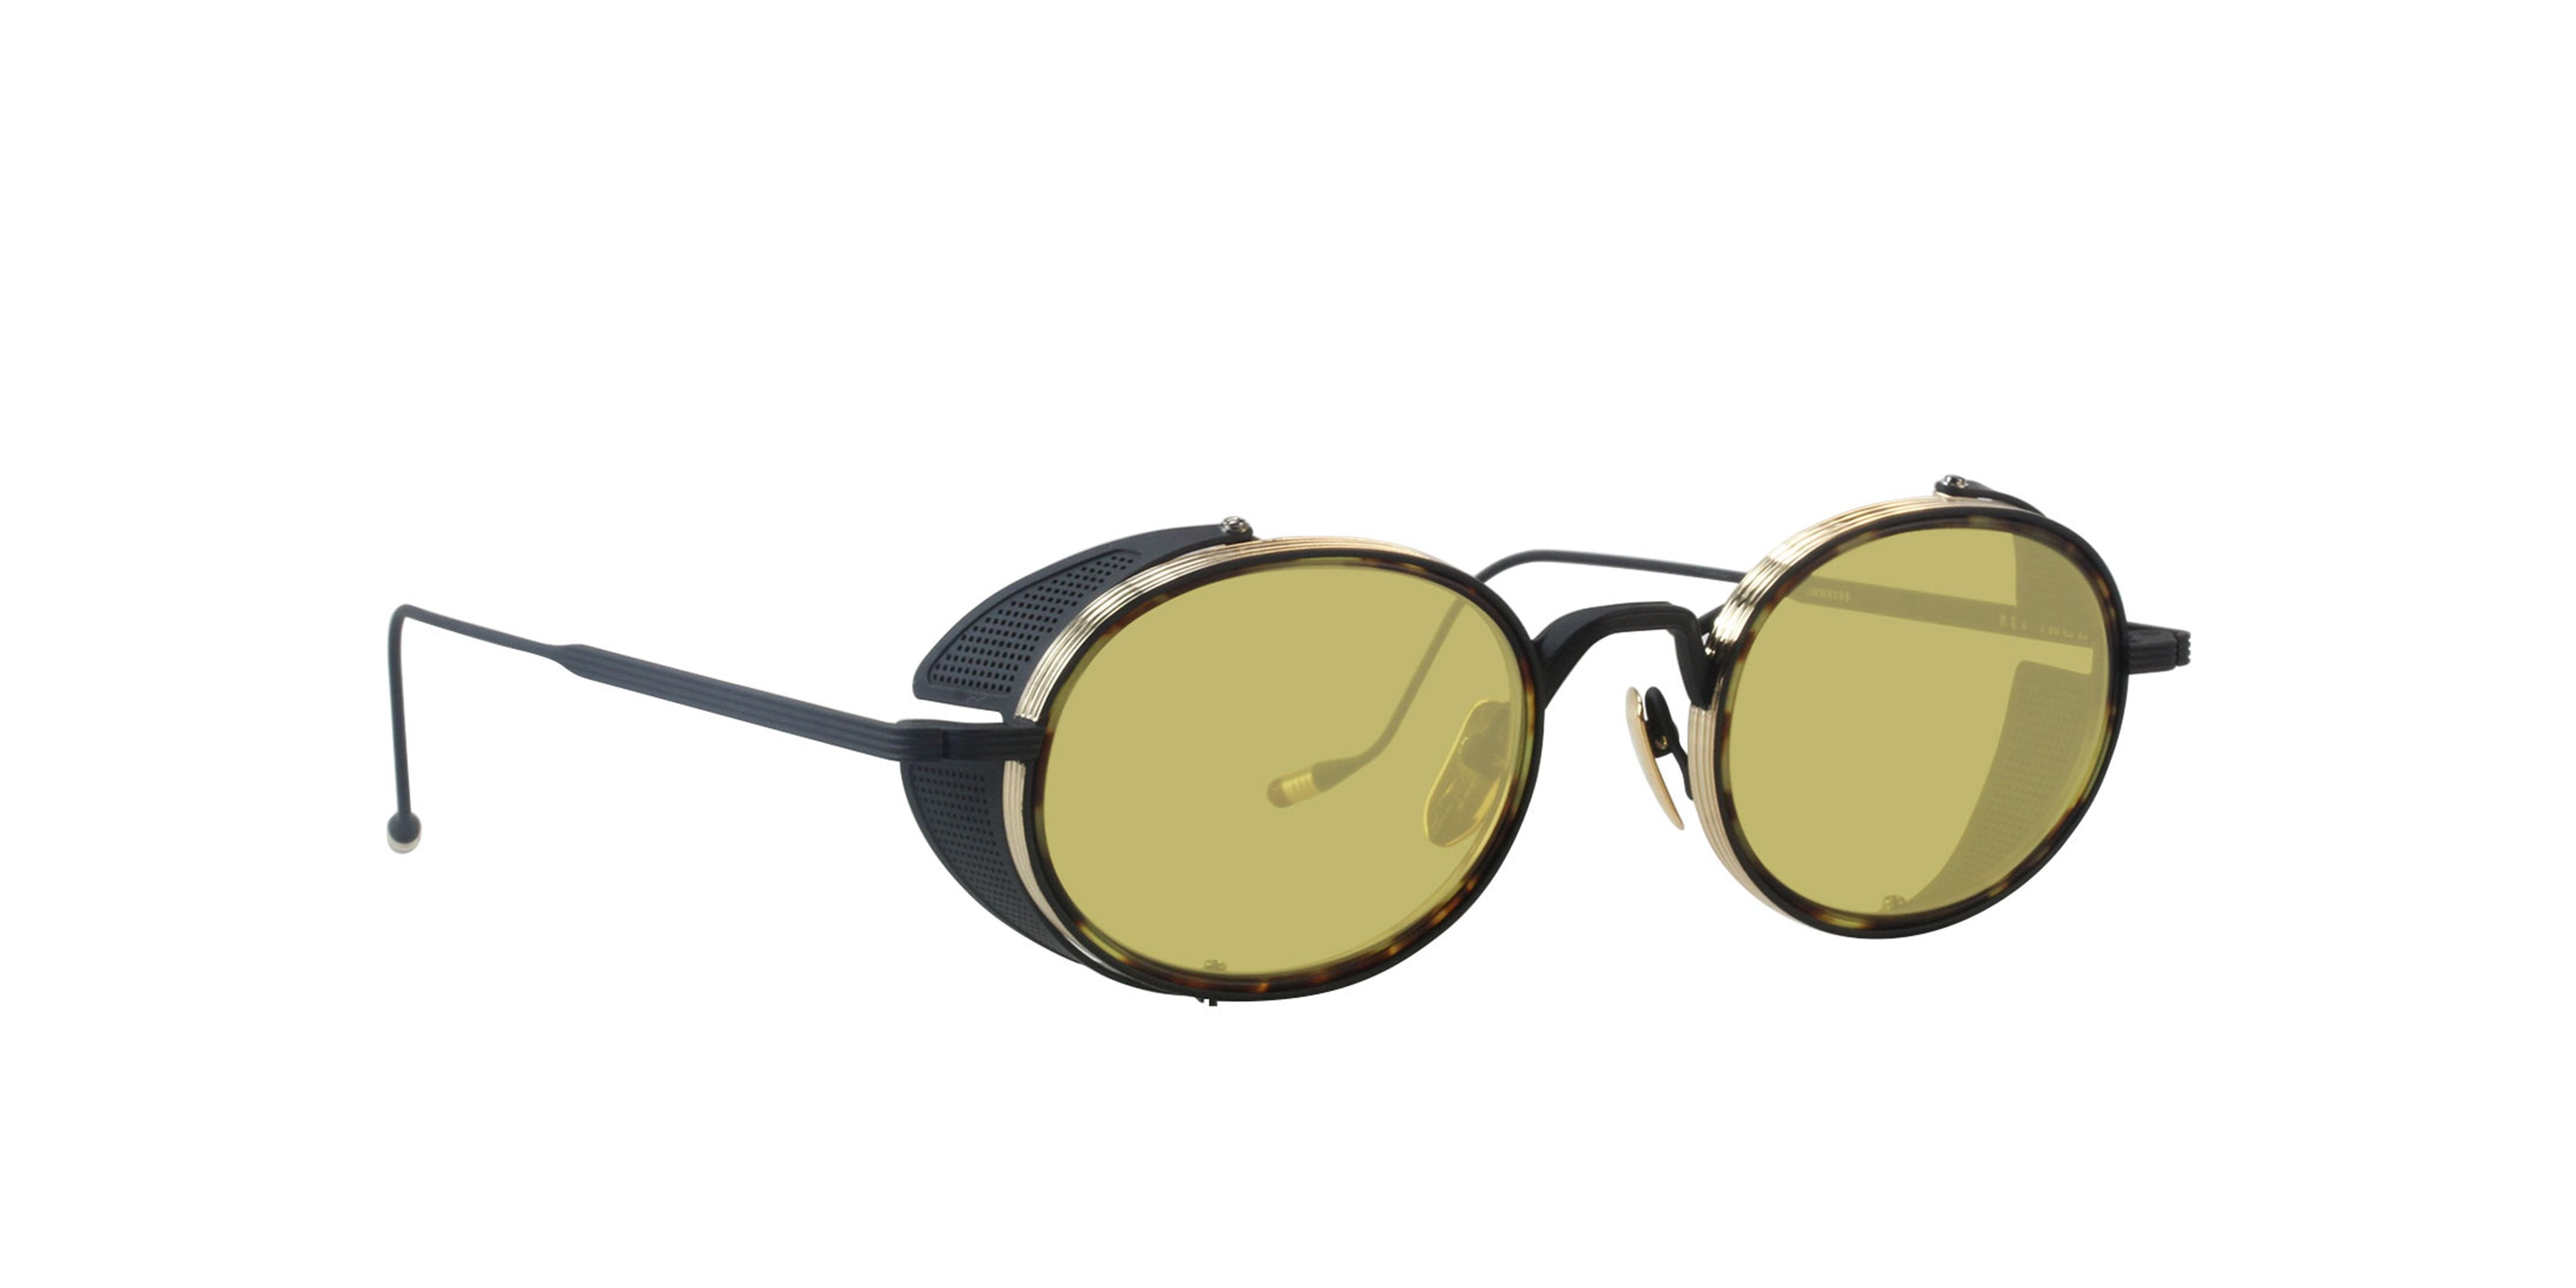 Jacques Marie Mage - Rex Black Gold/Yellow Oval Unisex Sunglasses - 50mm-Sunglasses-Designer Eyes